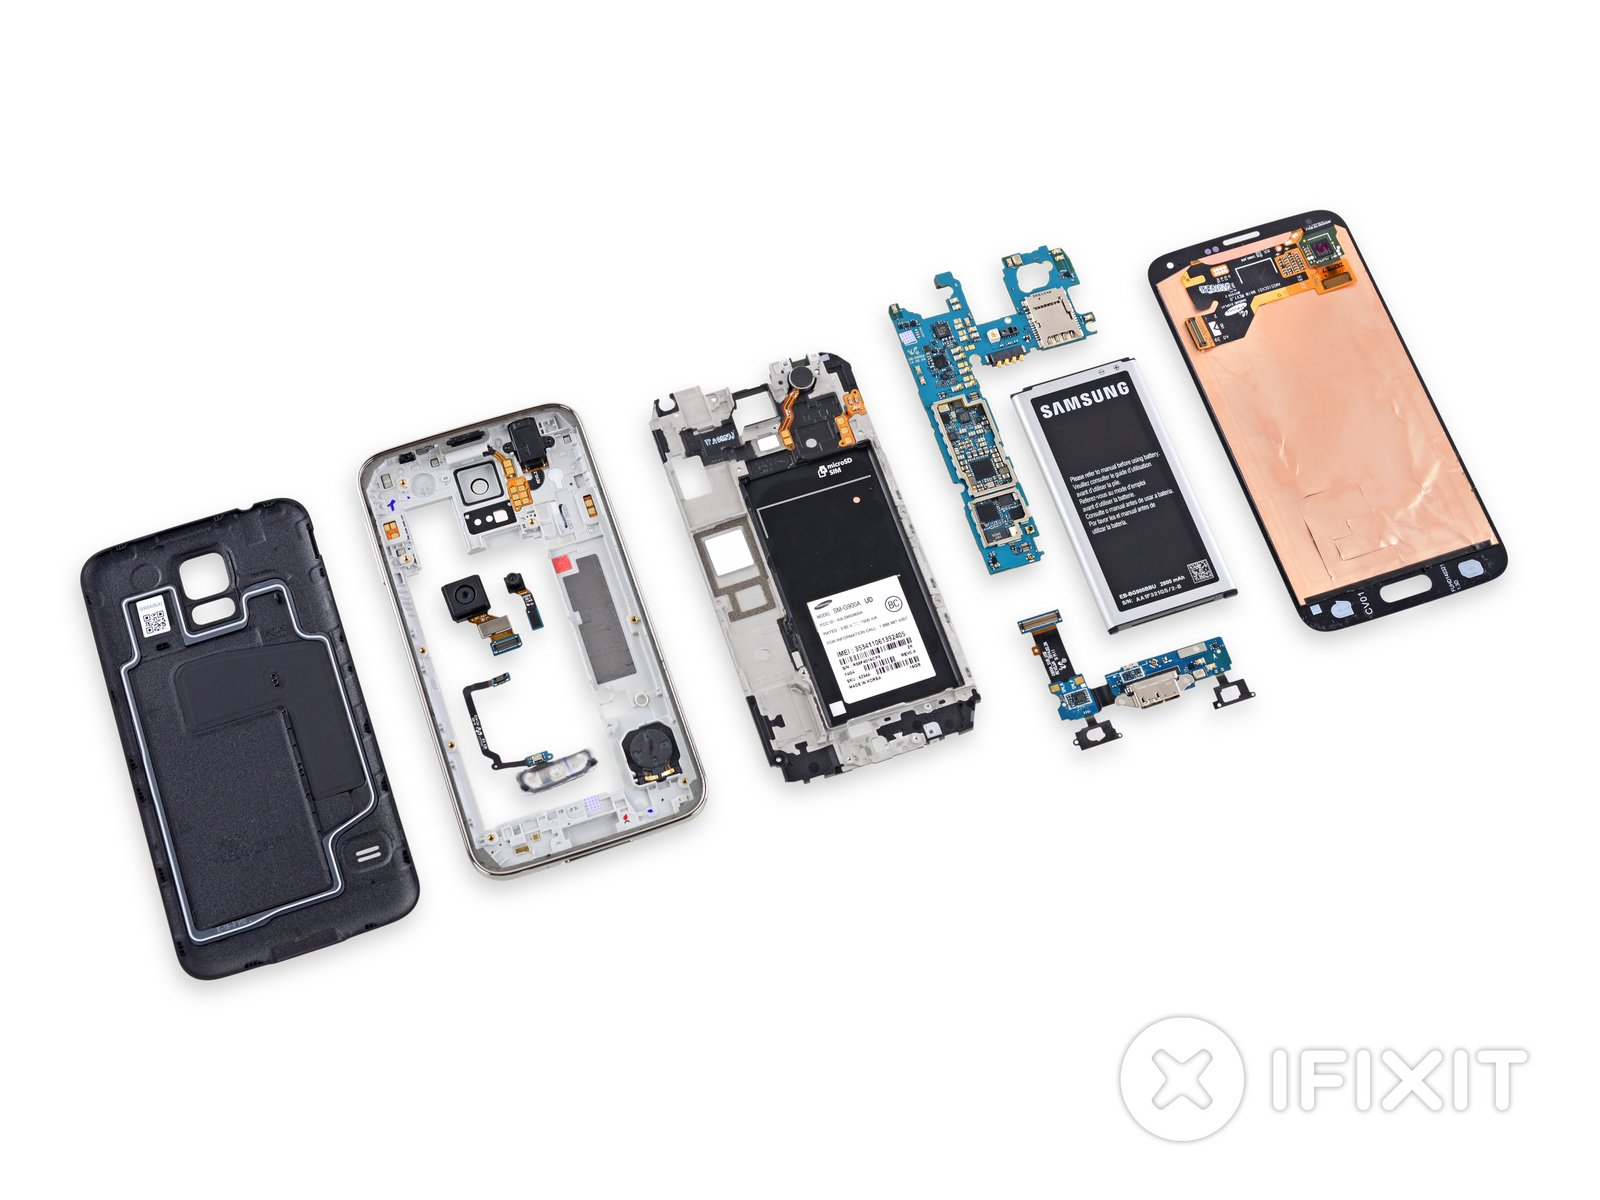 Samsung Galaxy S5 Teardown Ifixit View An Exploded Diagram Of The Cx2 Plus A Parts Listing Click Here